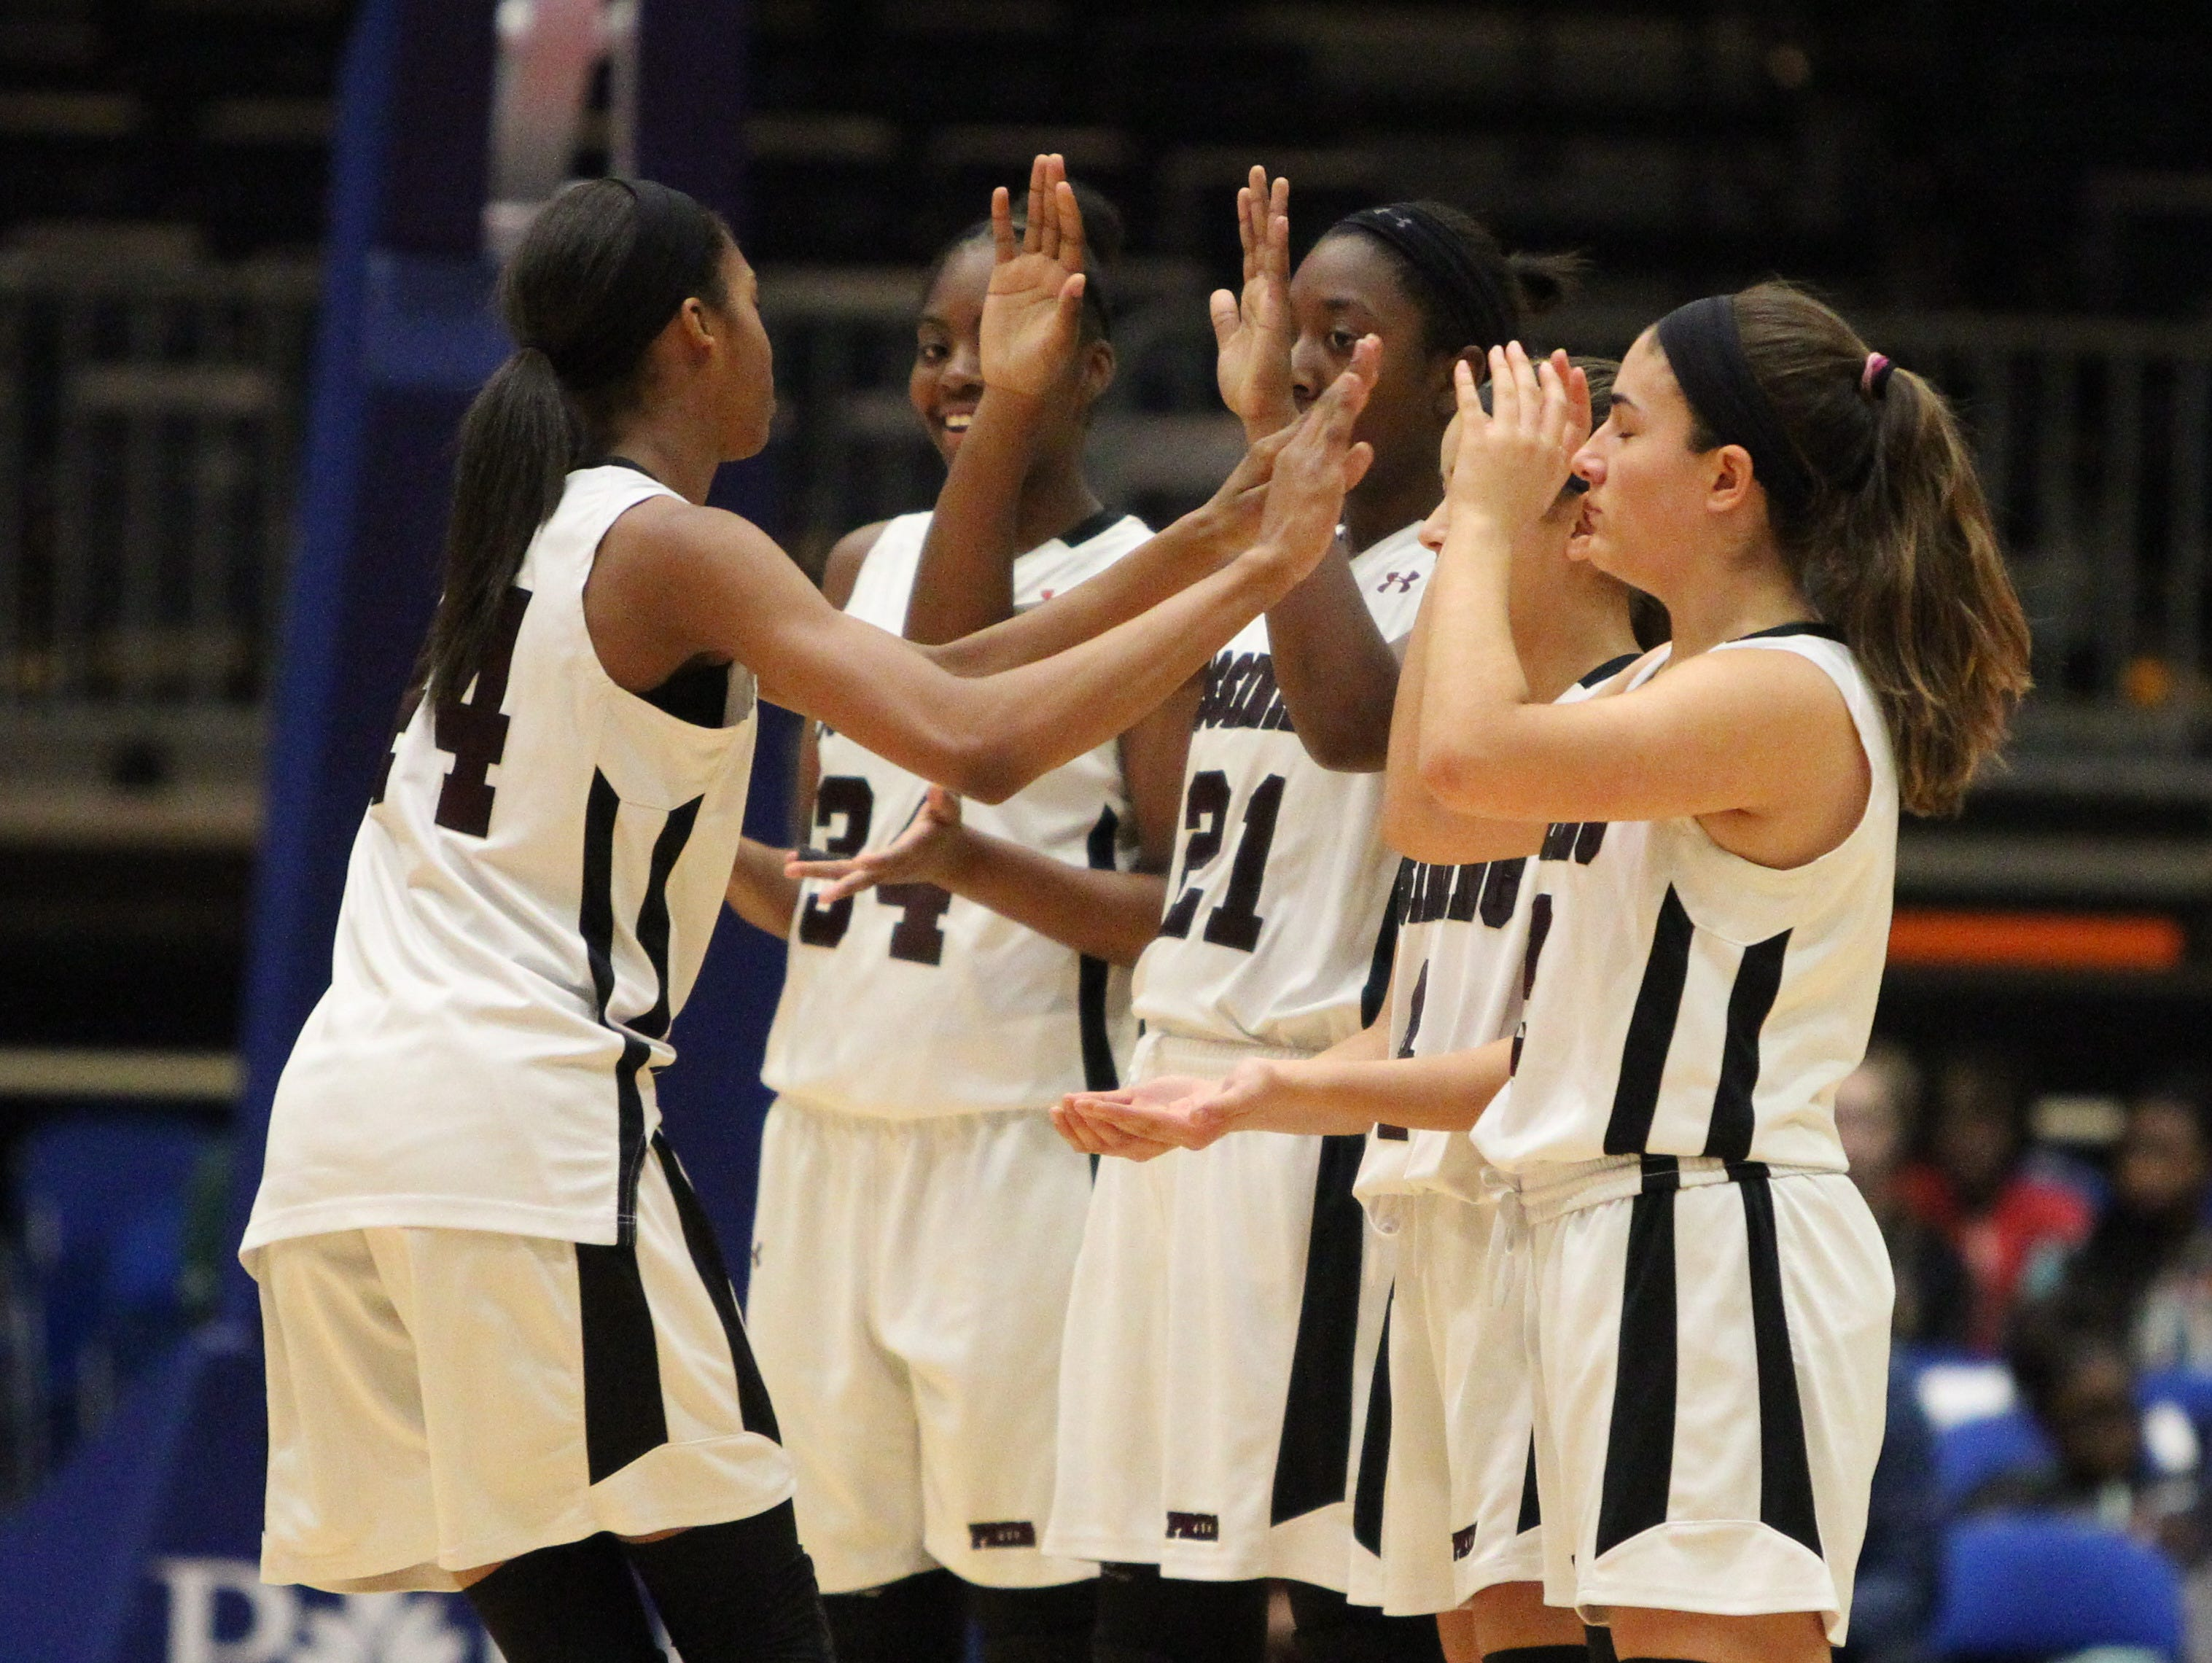 Ossining beat New Rochelle 86-54 in a Section 1 Class AA girls basketball semifinal at the Westchester County Center Feb. 25, 2016.